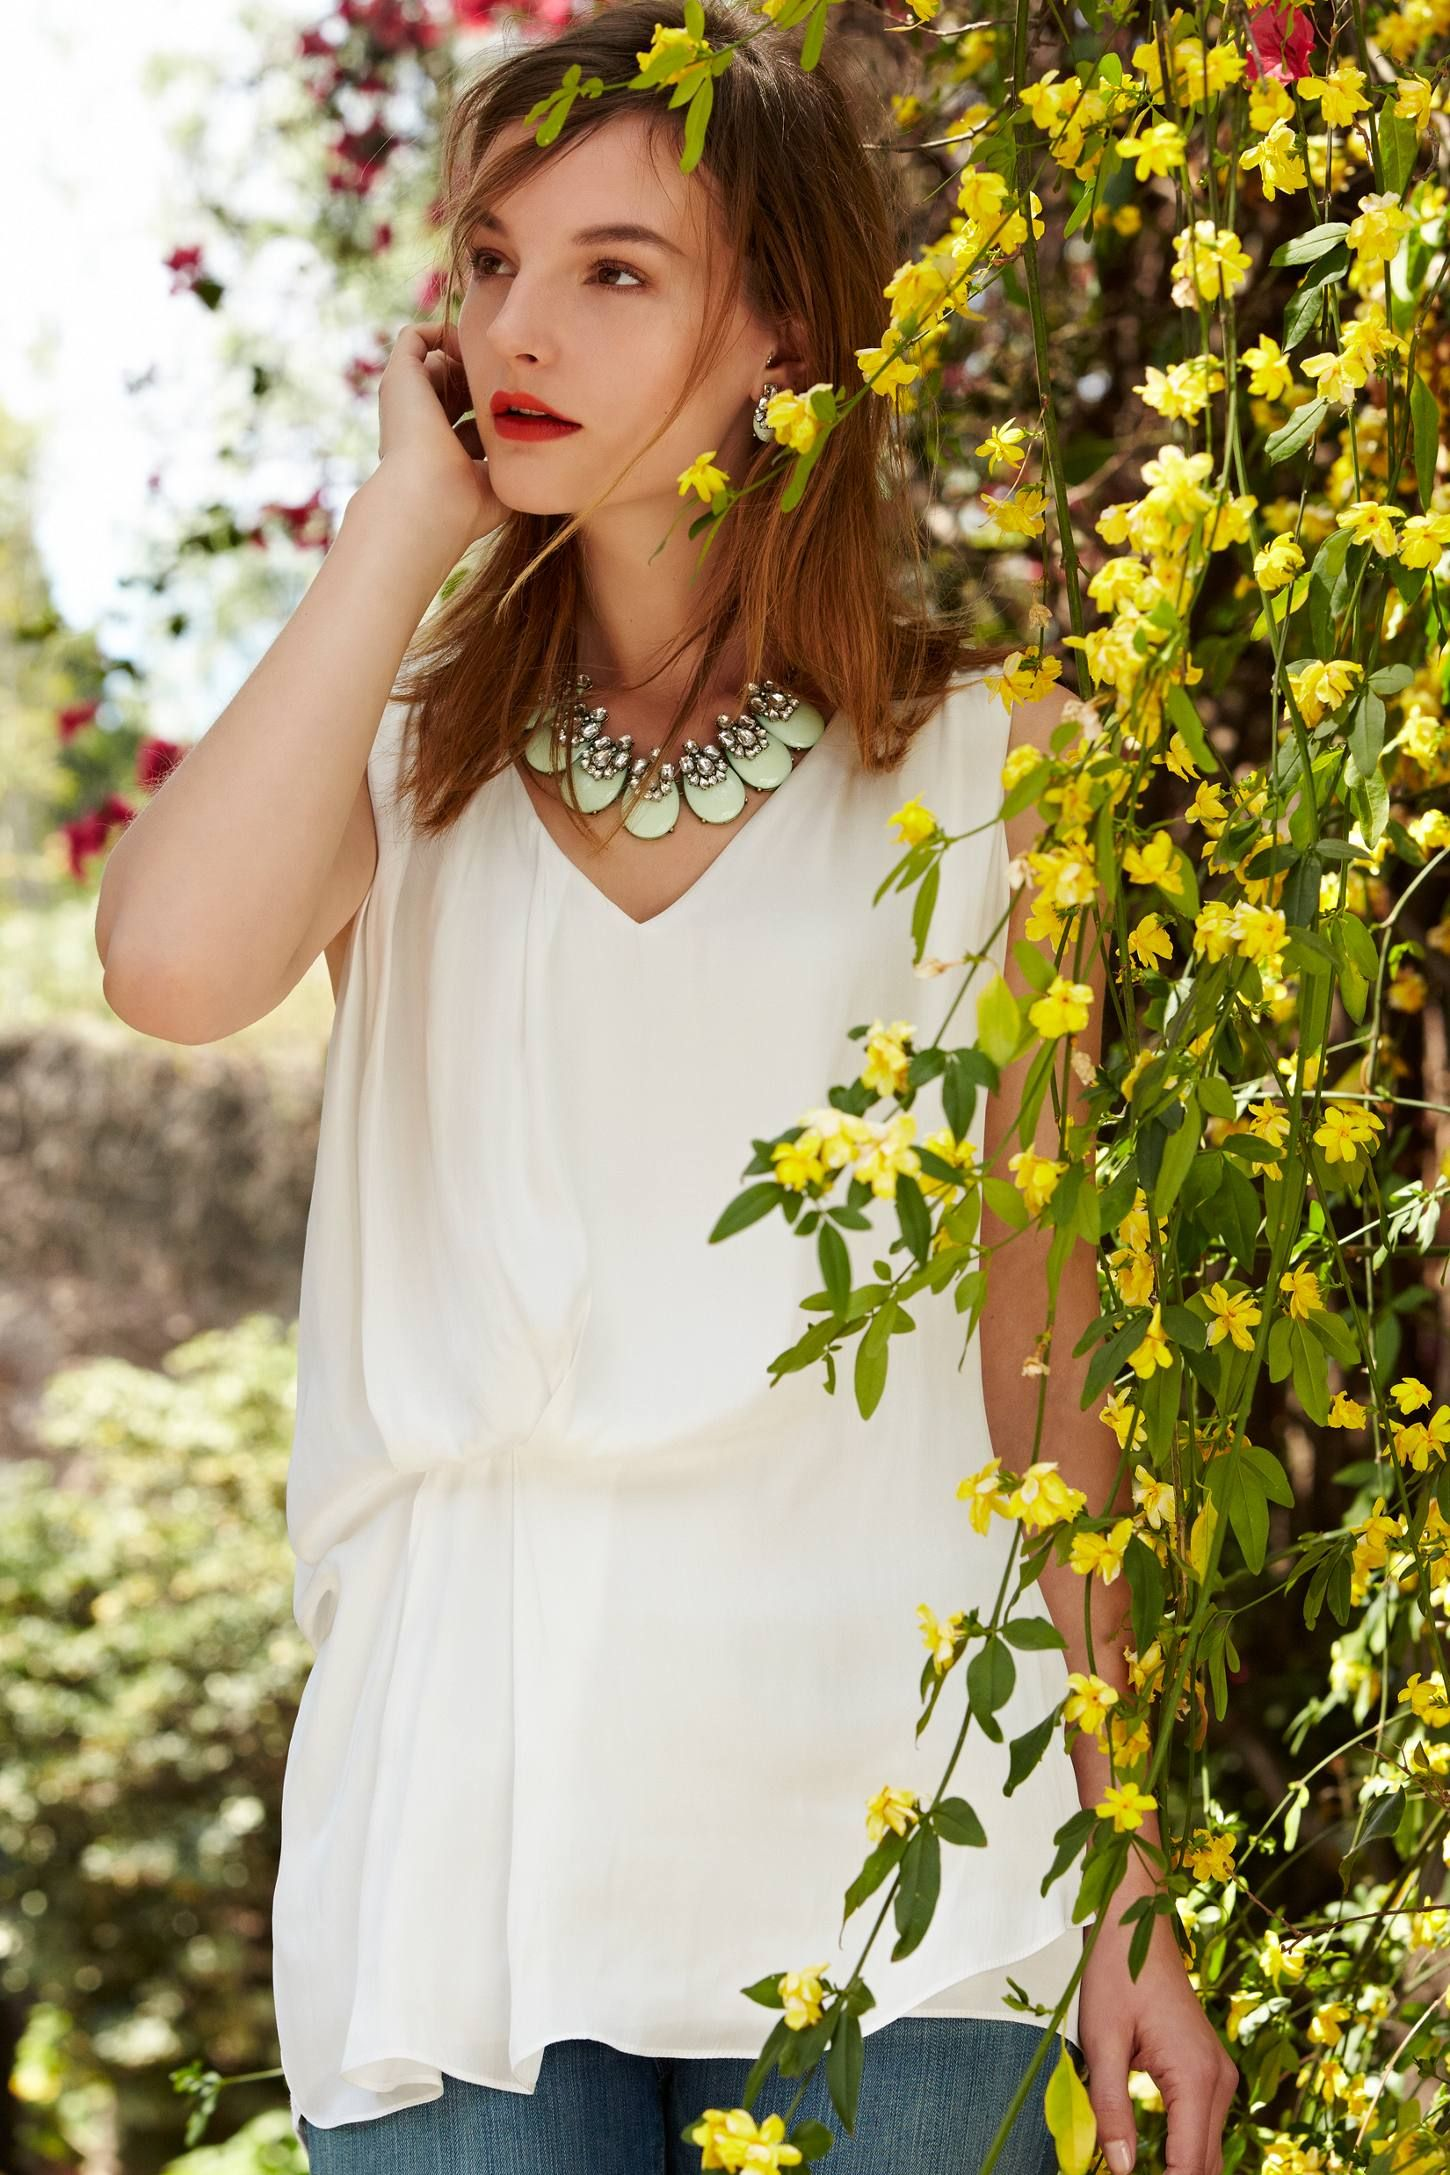 Lokoya Tucked Tunic and gorgeous necklace anthropologie.com